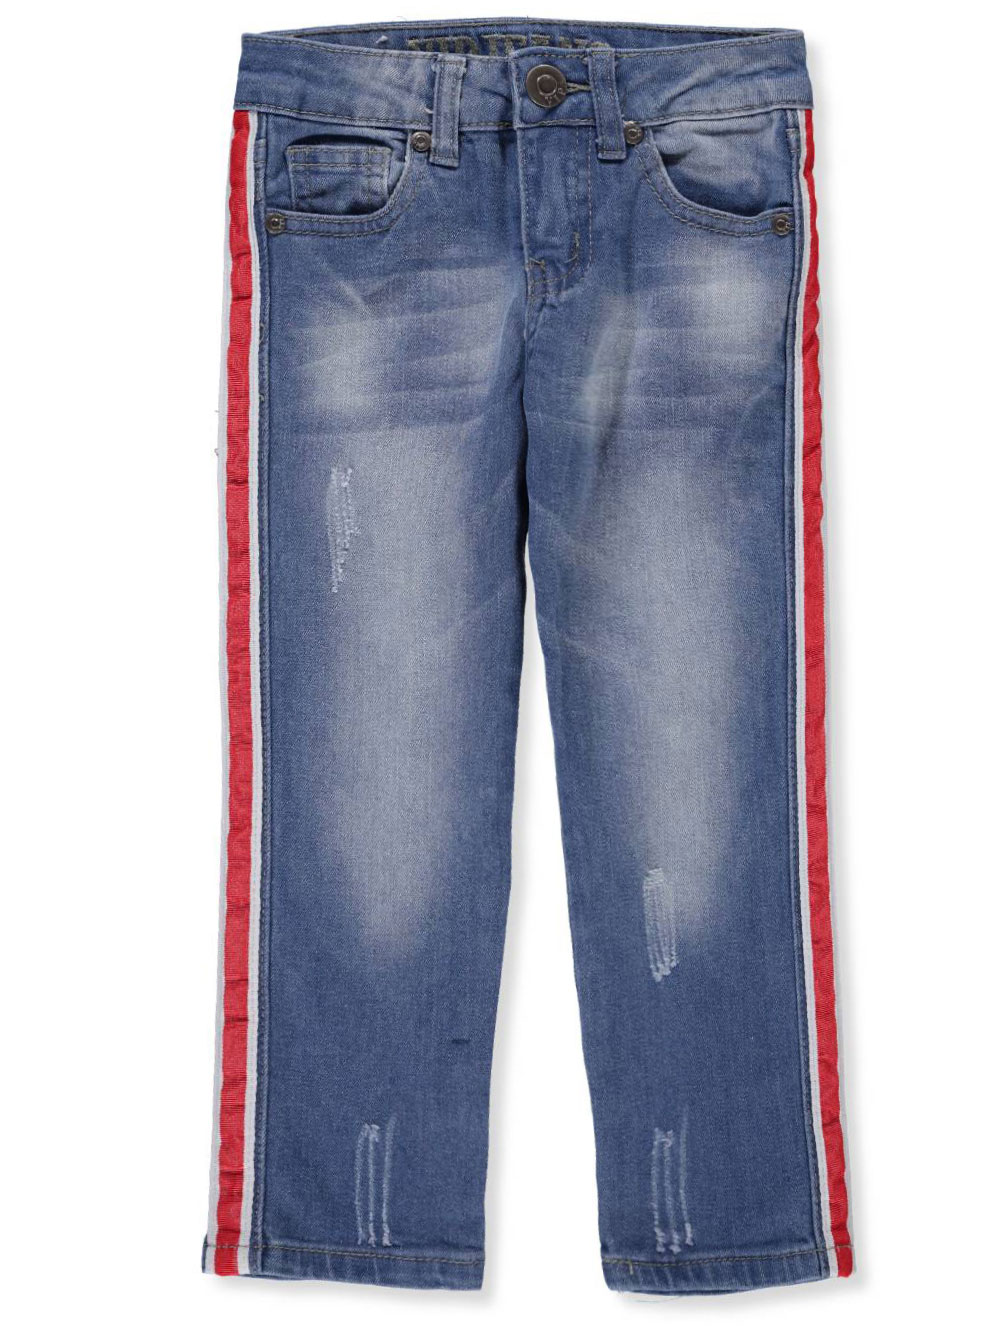 Wallflower Girl Jeans